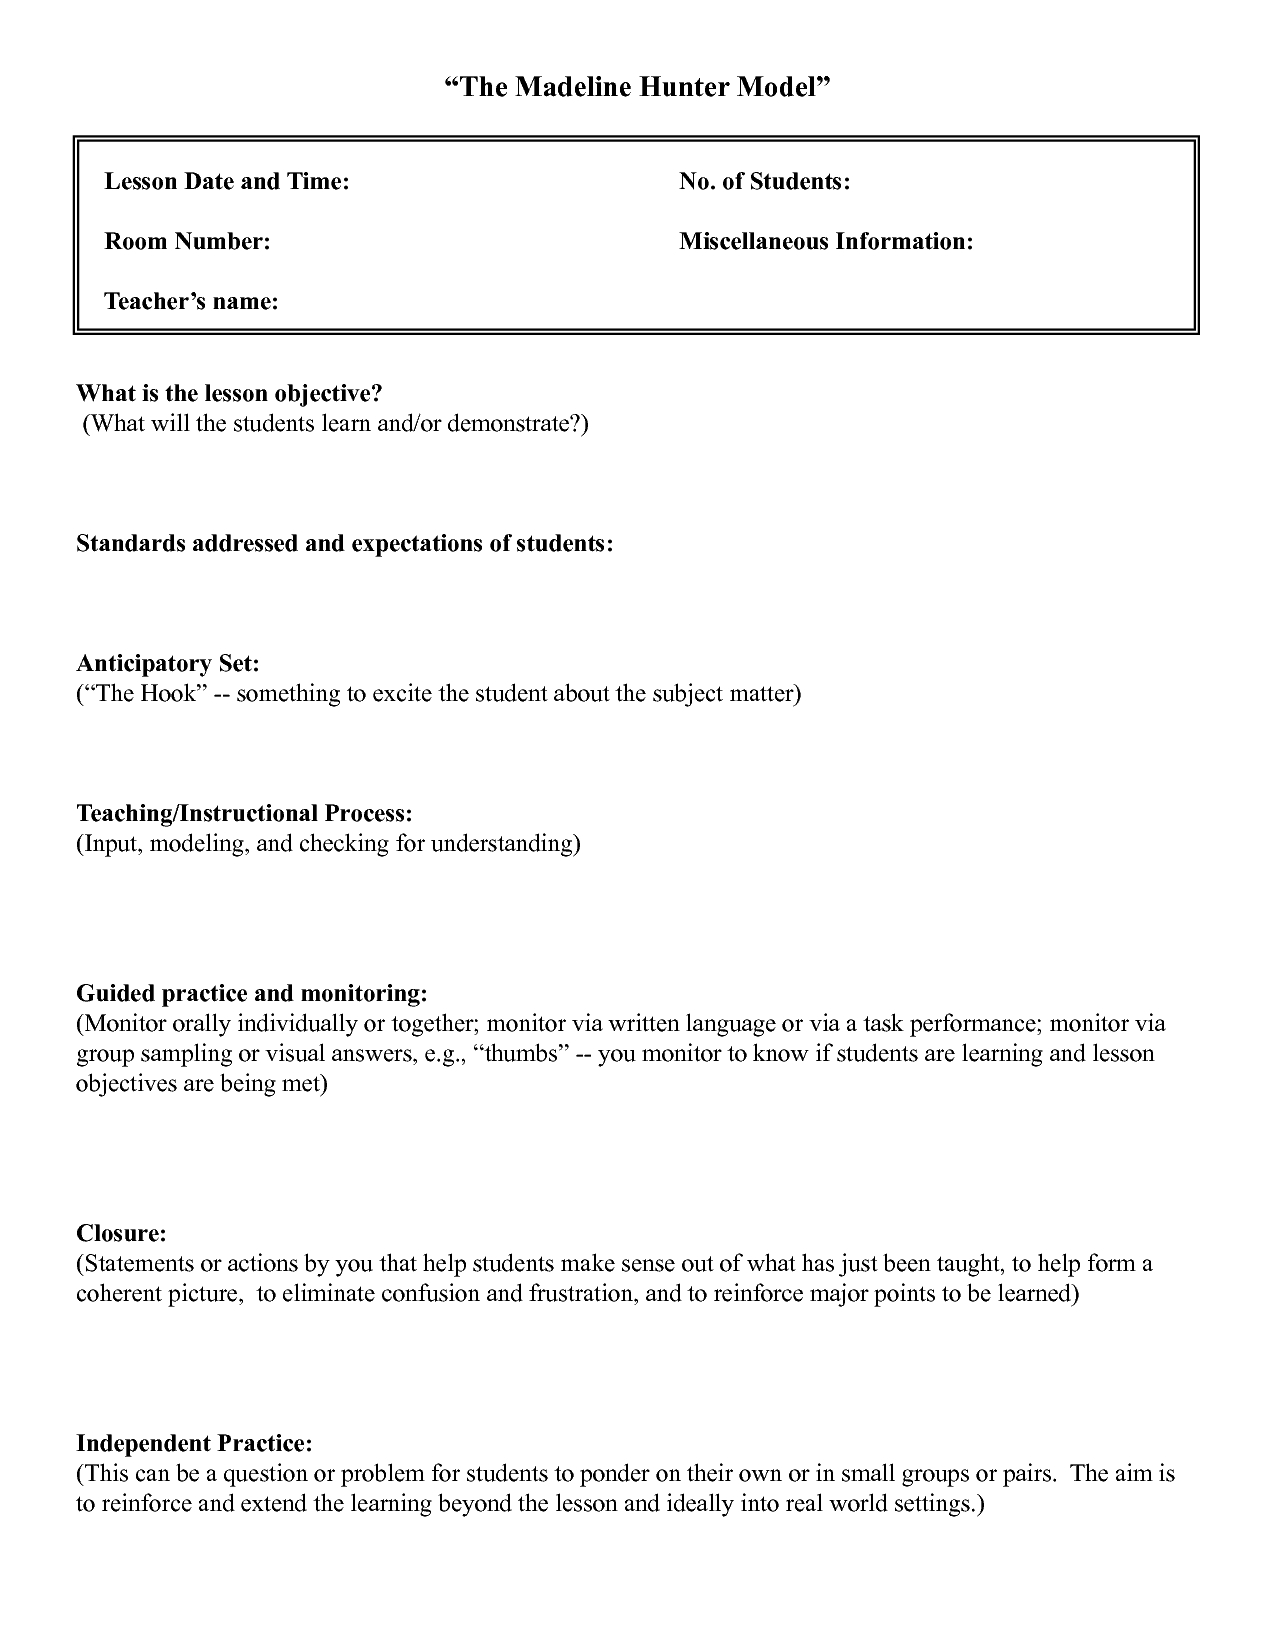 Five Common Mistakes In Writing Lesson. | Lesson Plan Intended For Madeline Hunter Lesson Plan Template Blank